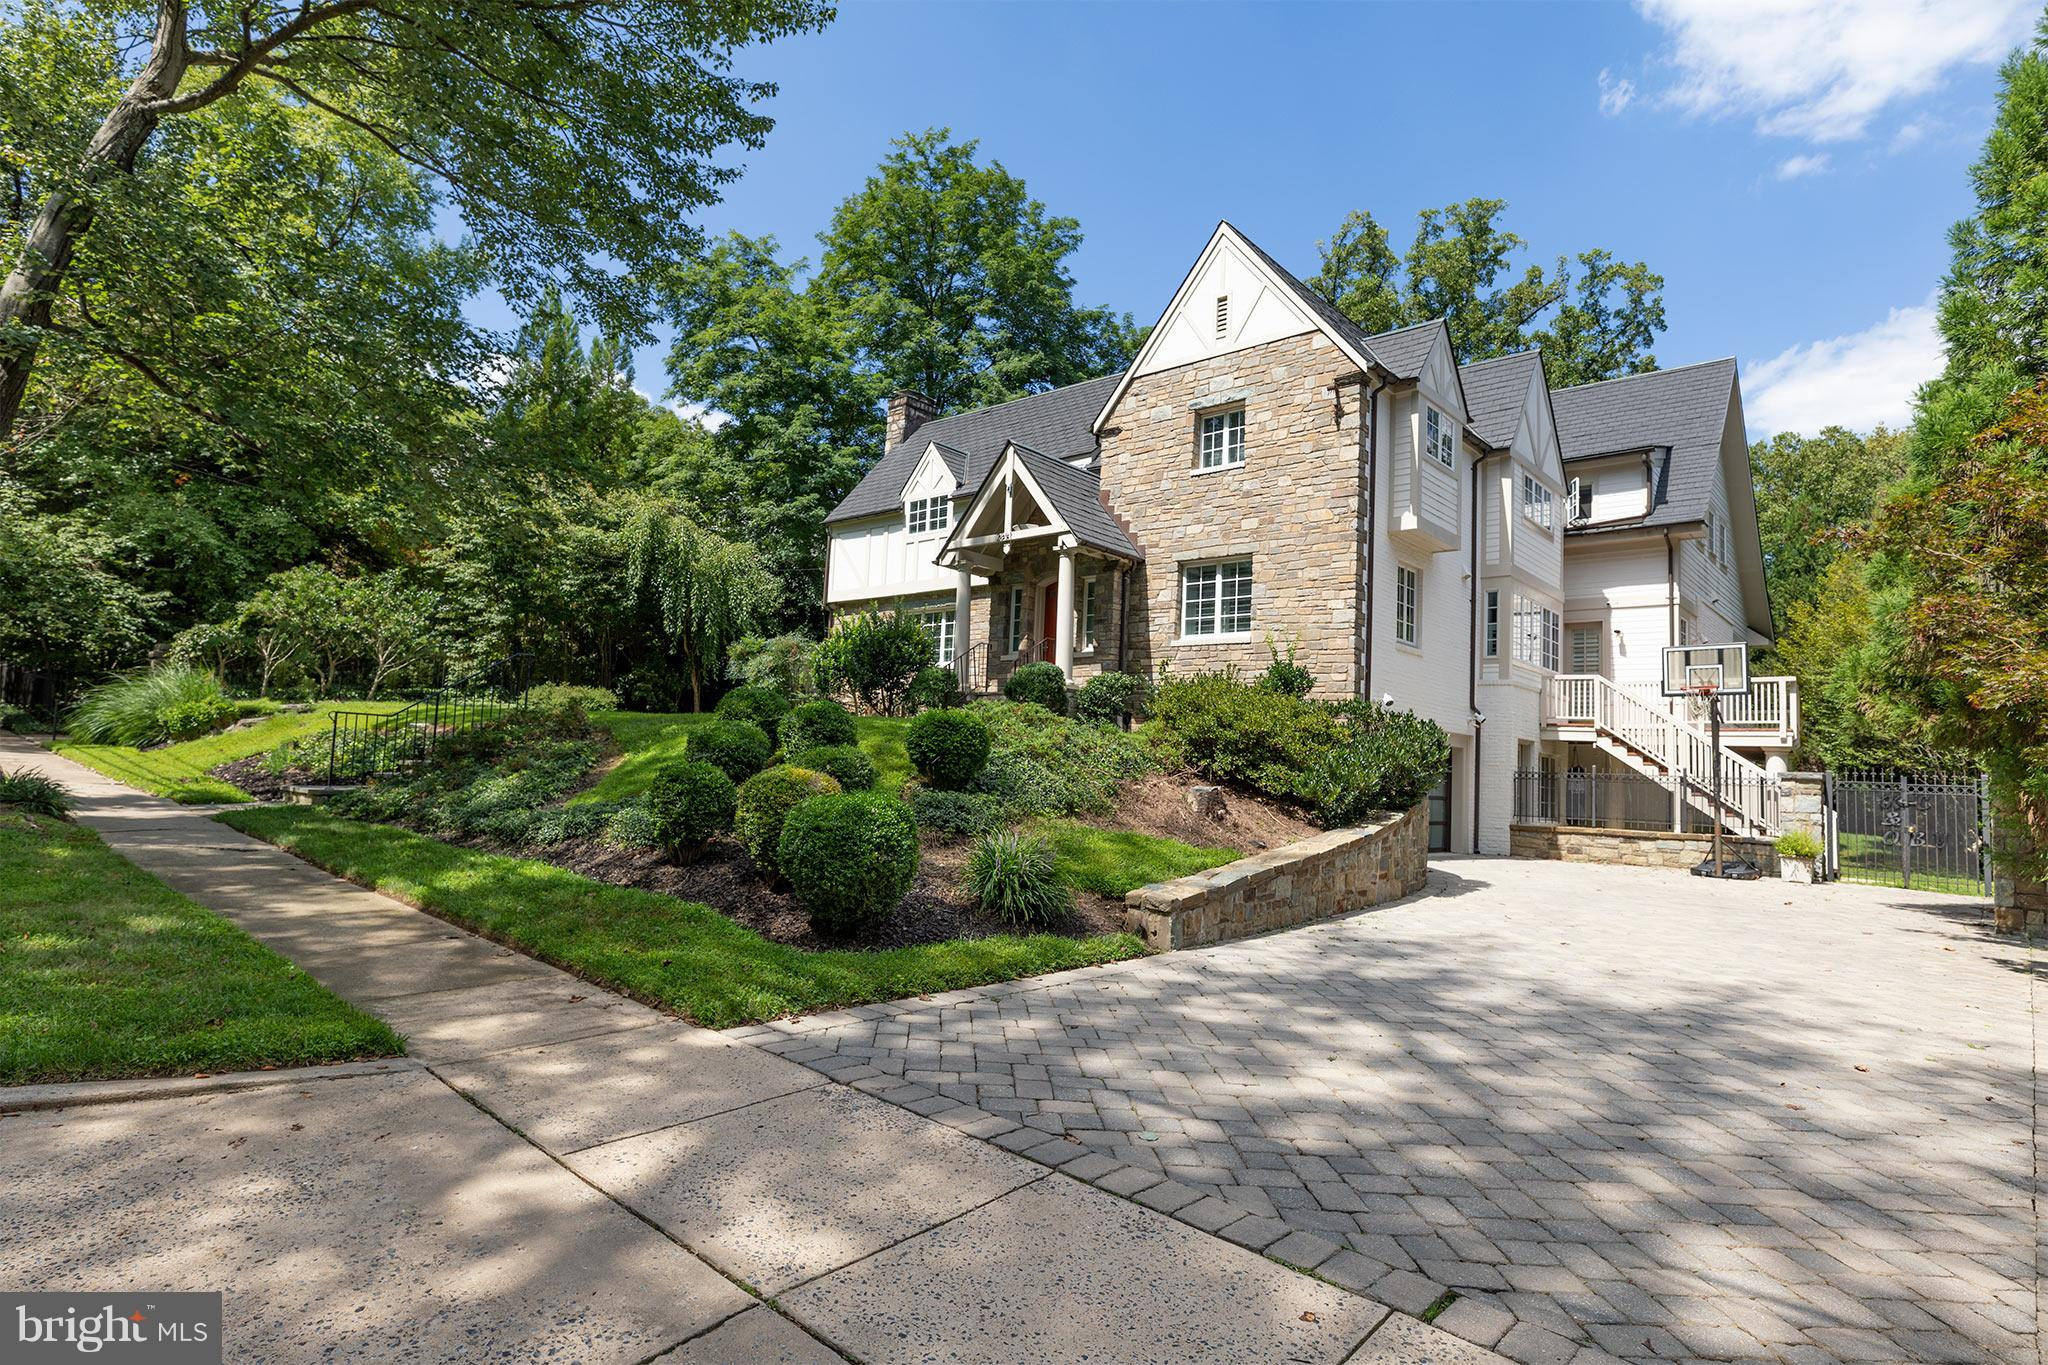 2851 CHESTERFIELD PLACE NW, WASHINGTON, DC 20008